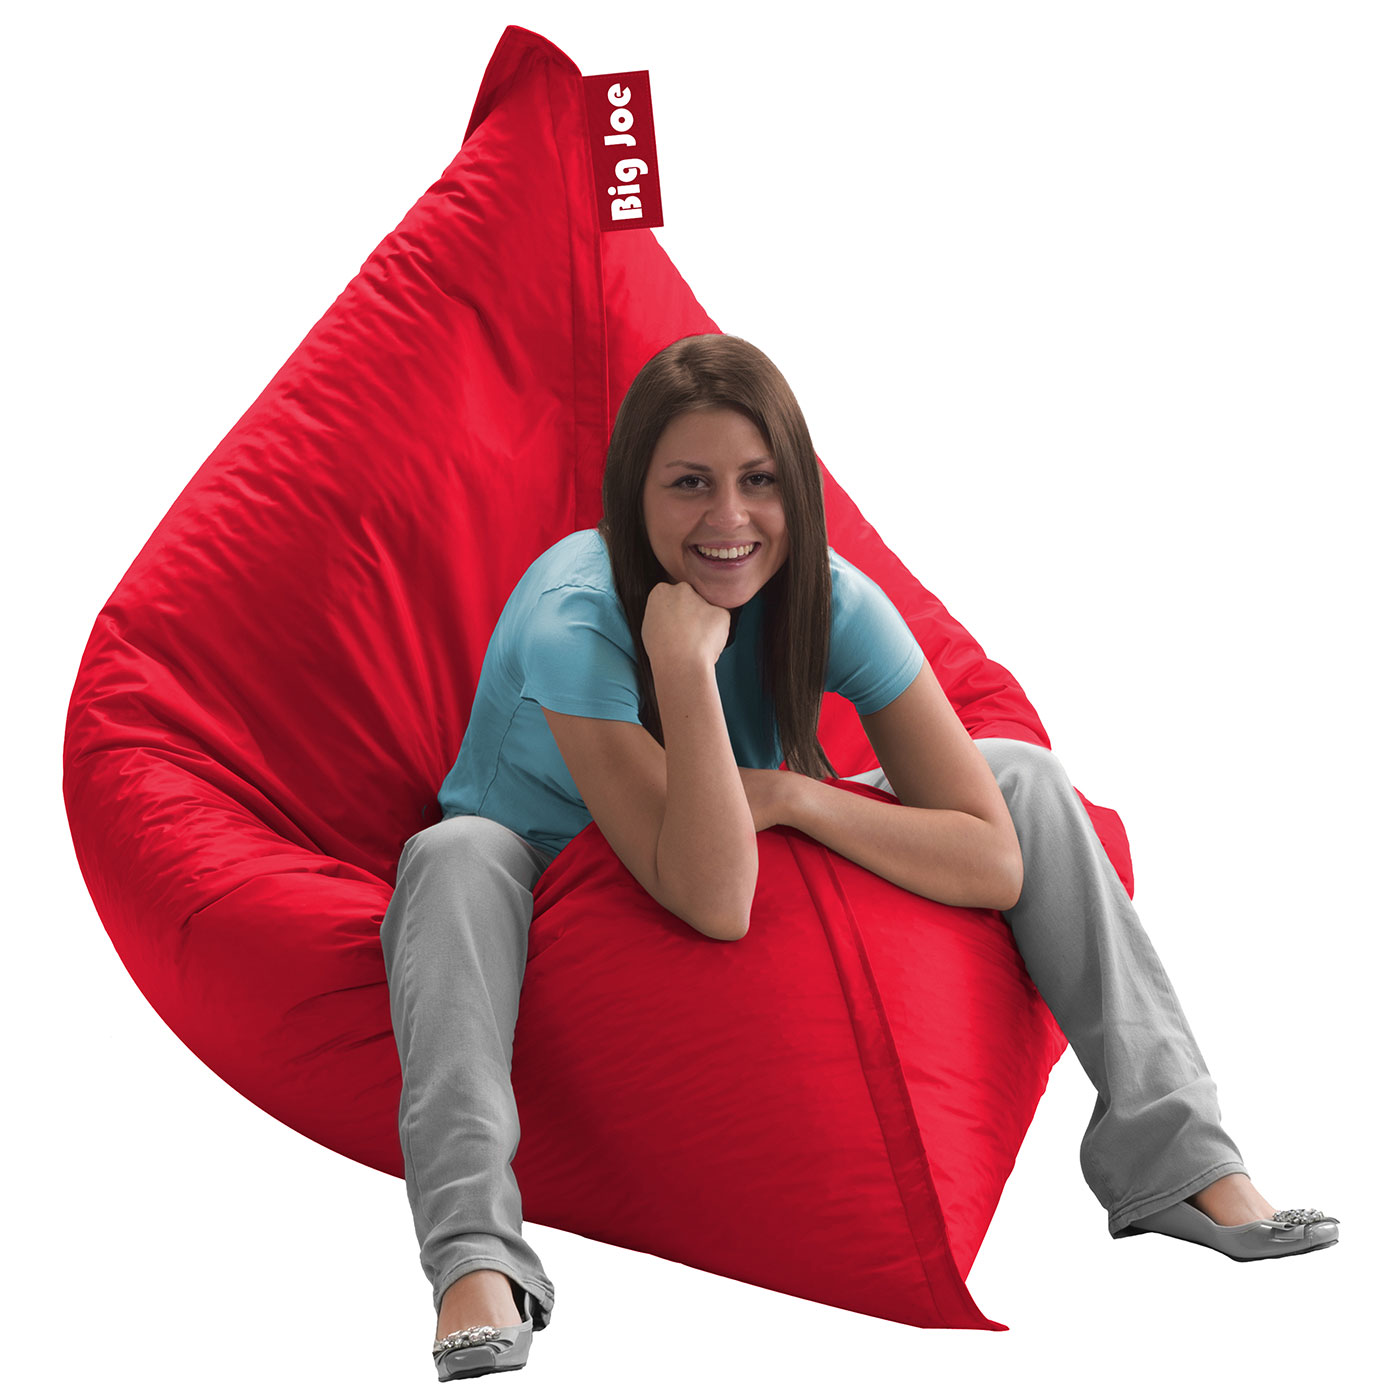 Miraculous Comfort Research Big Joe Original Smartmax Bean Bag Chair In Flaming Red Gmtry Best Dining Table And Chair Ideas Images Gmtryco